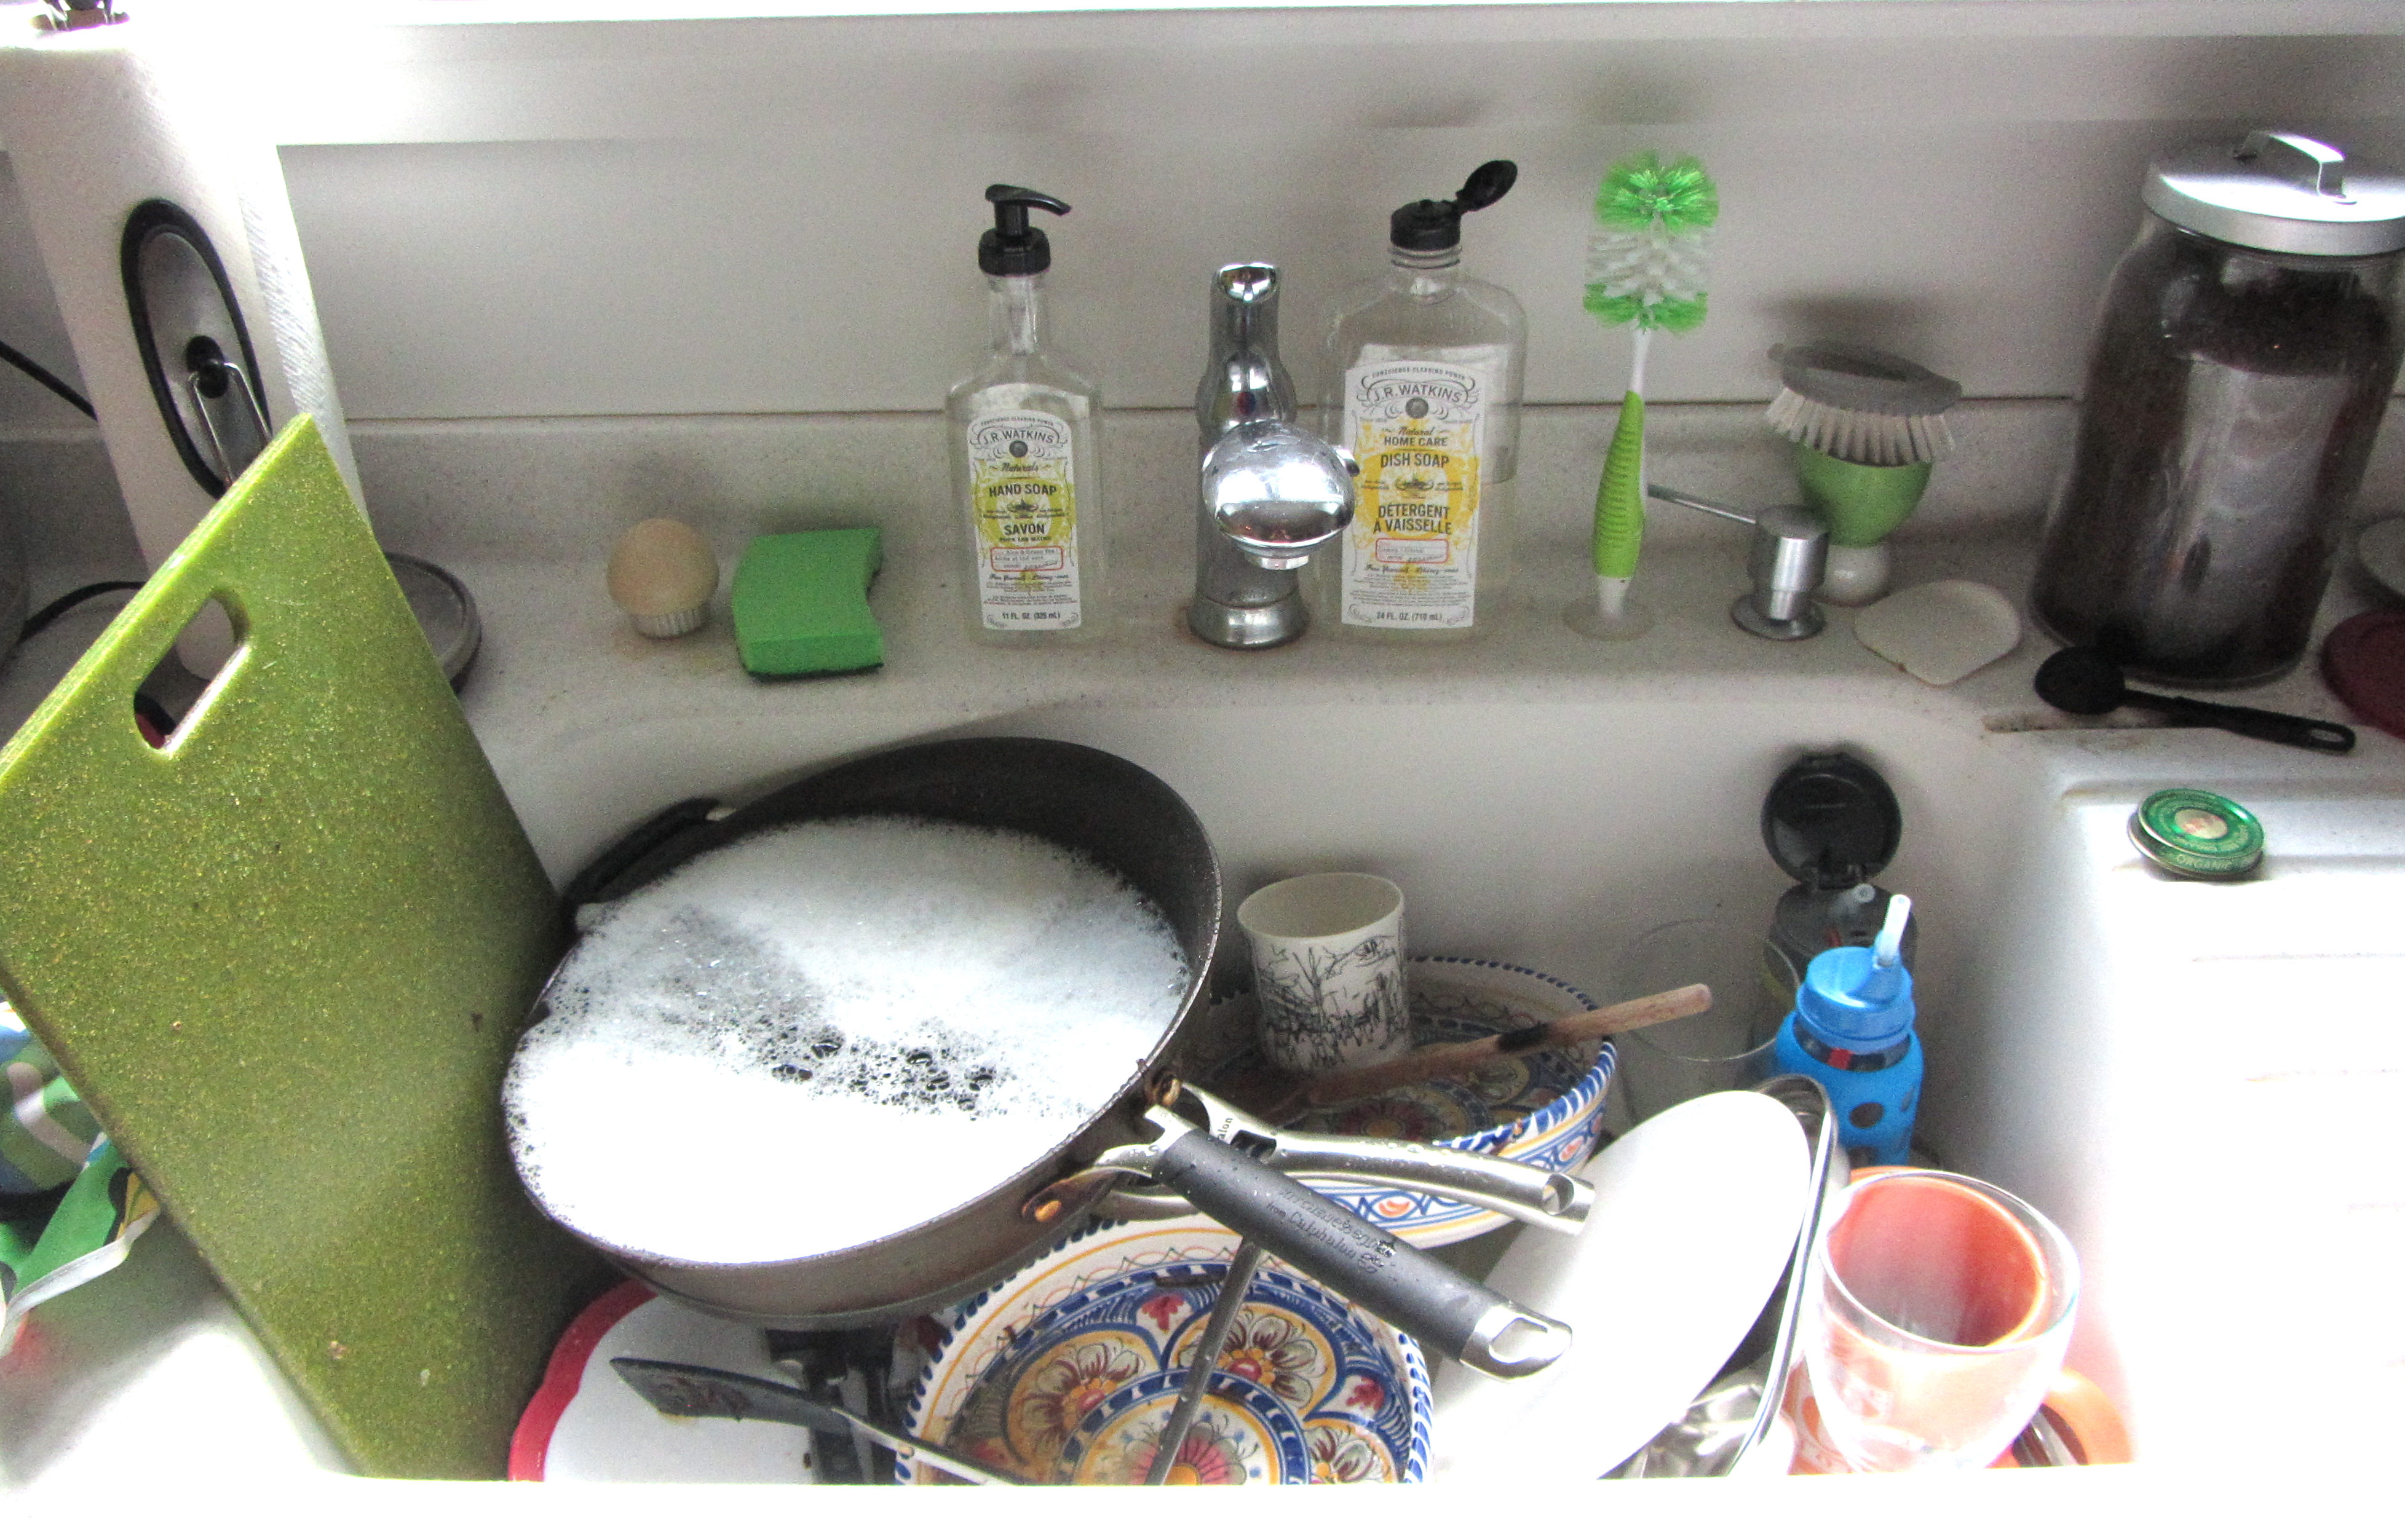 Kitchen Sink With Dishes mommy wash dishes: greetings from the kitchen sink – the home tome